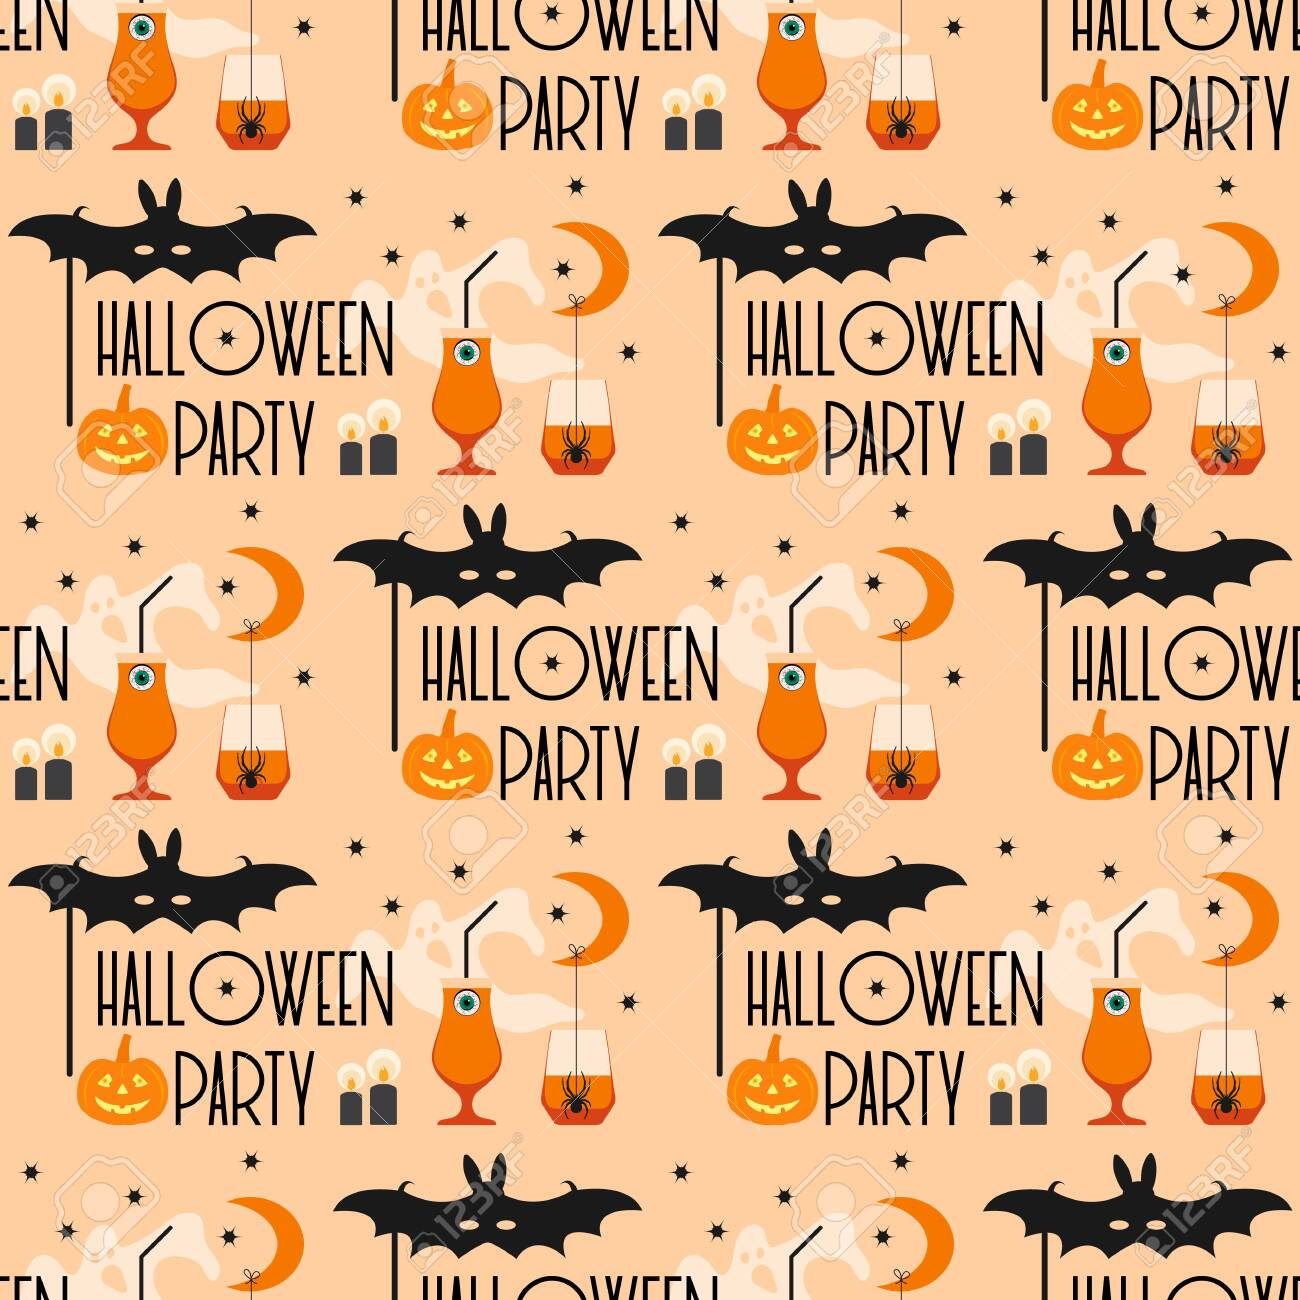 Halloween 2020 Party Halloween Party 2020. Vector Seamless Pattern With Inscription